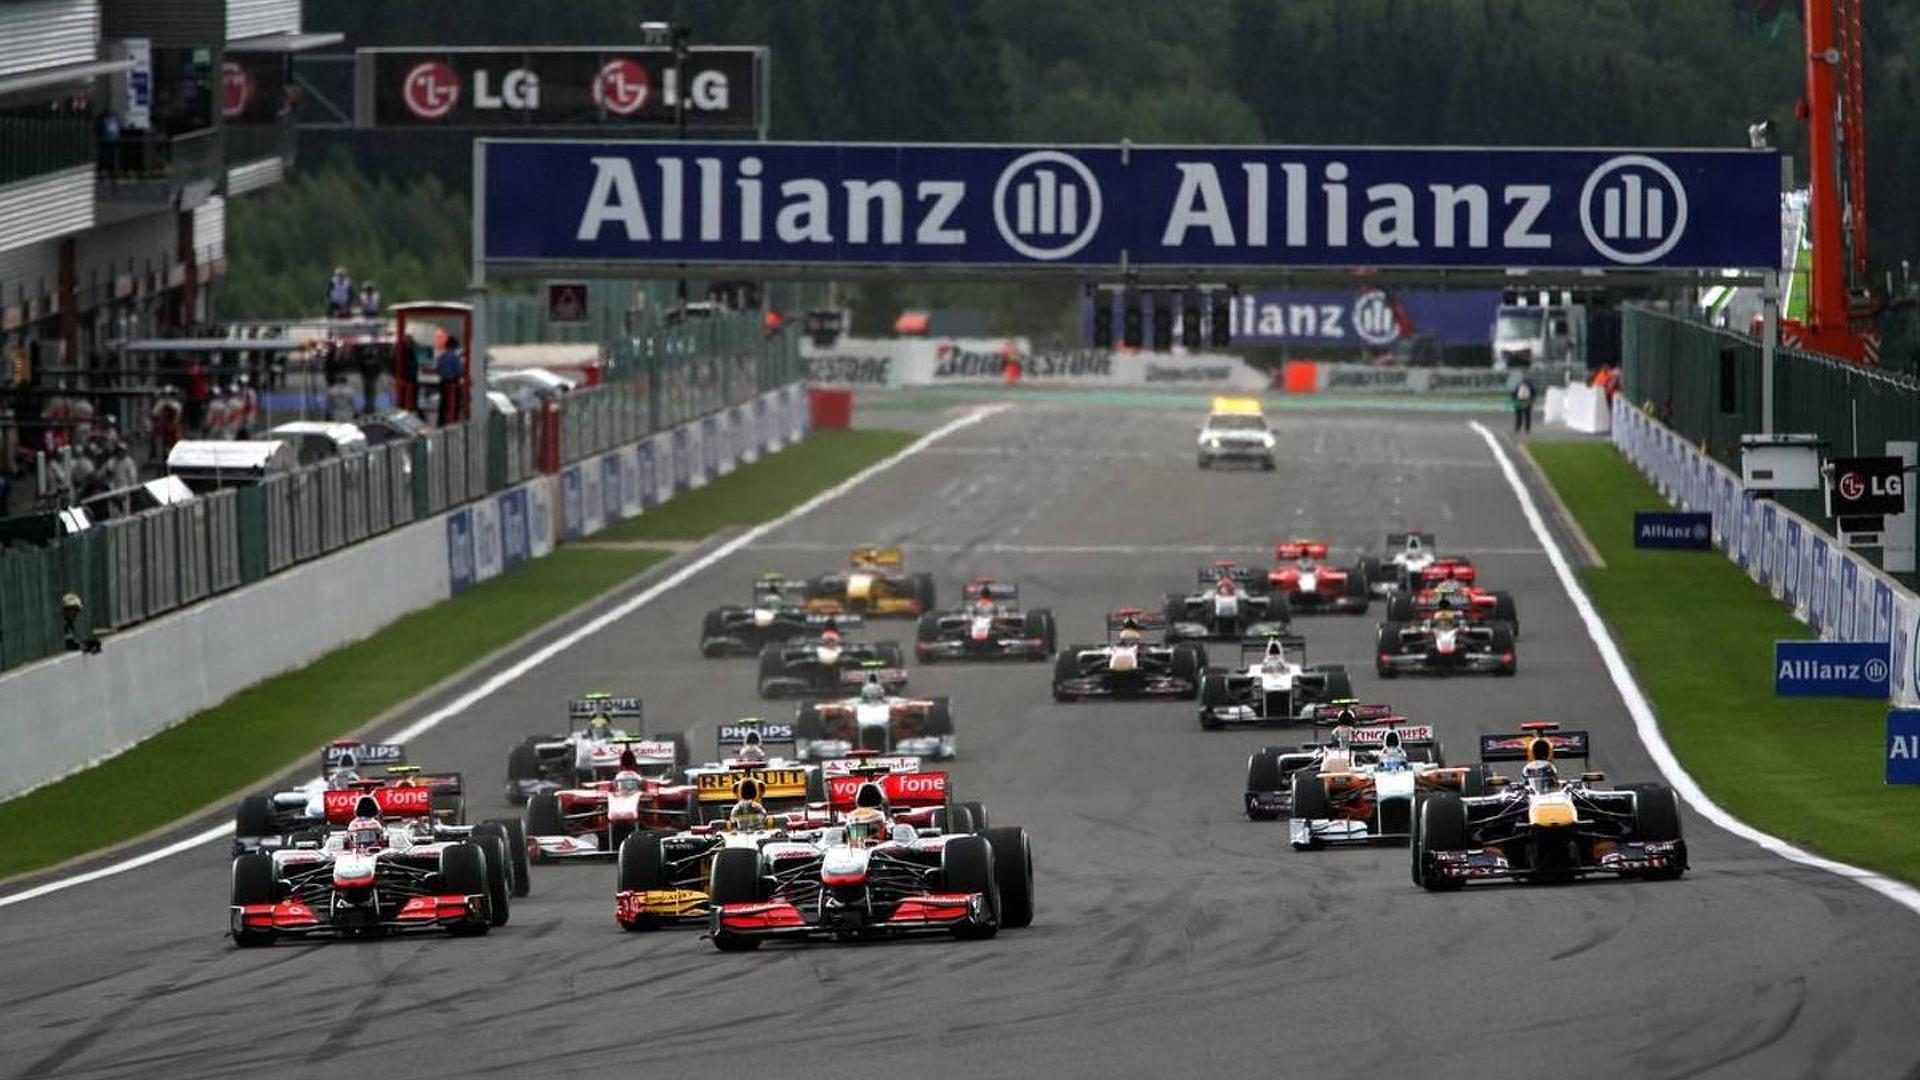 Spa shortfall clouds future of popular race